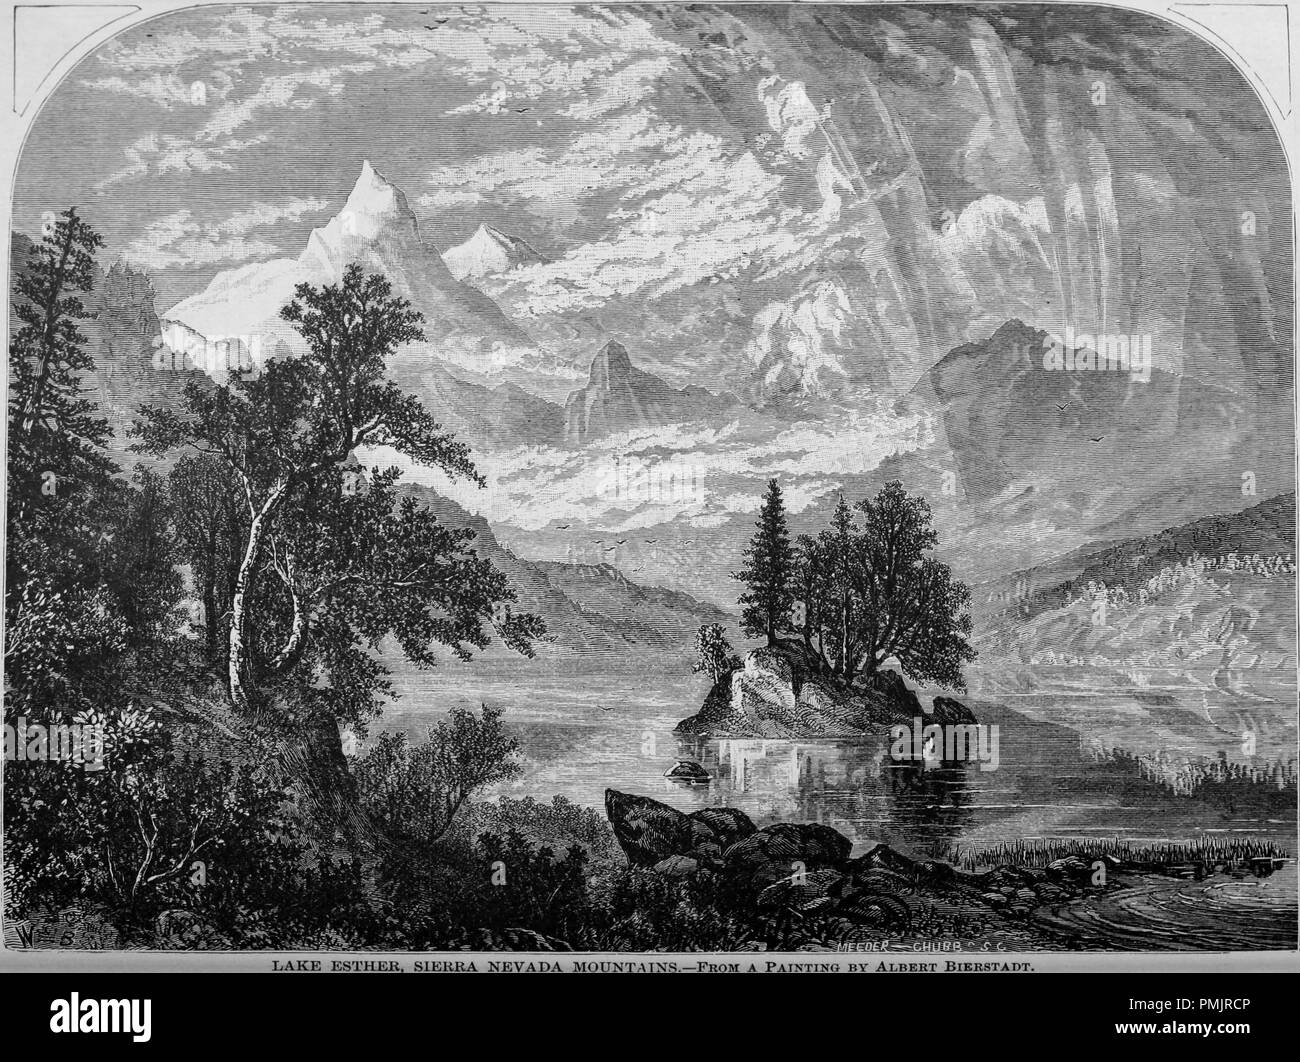 Engraving of the Lake Esther in the Sierra Nevada Mountains, from the book 'The Pacific tourist', 1877. Courtesy Internet Archive. () - Stock Image